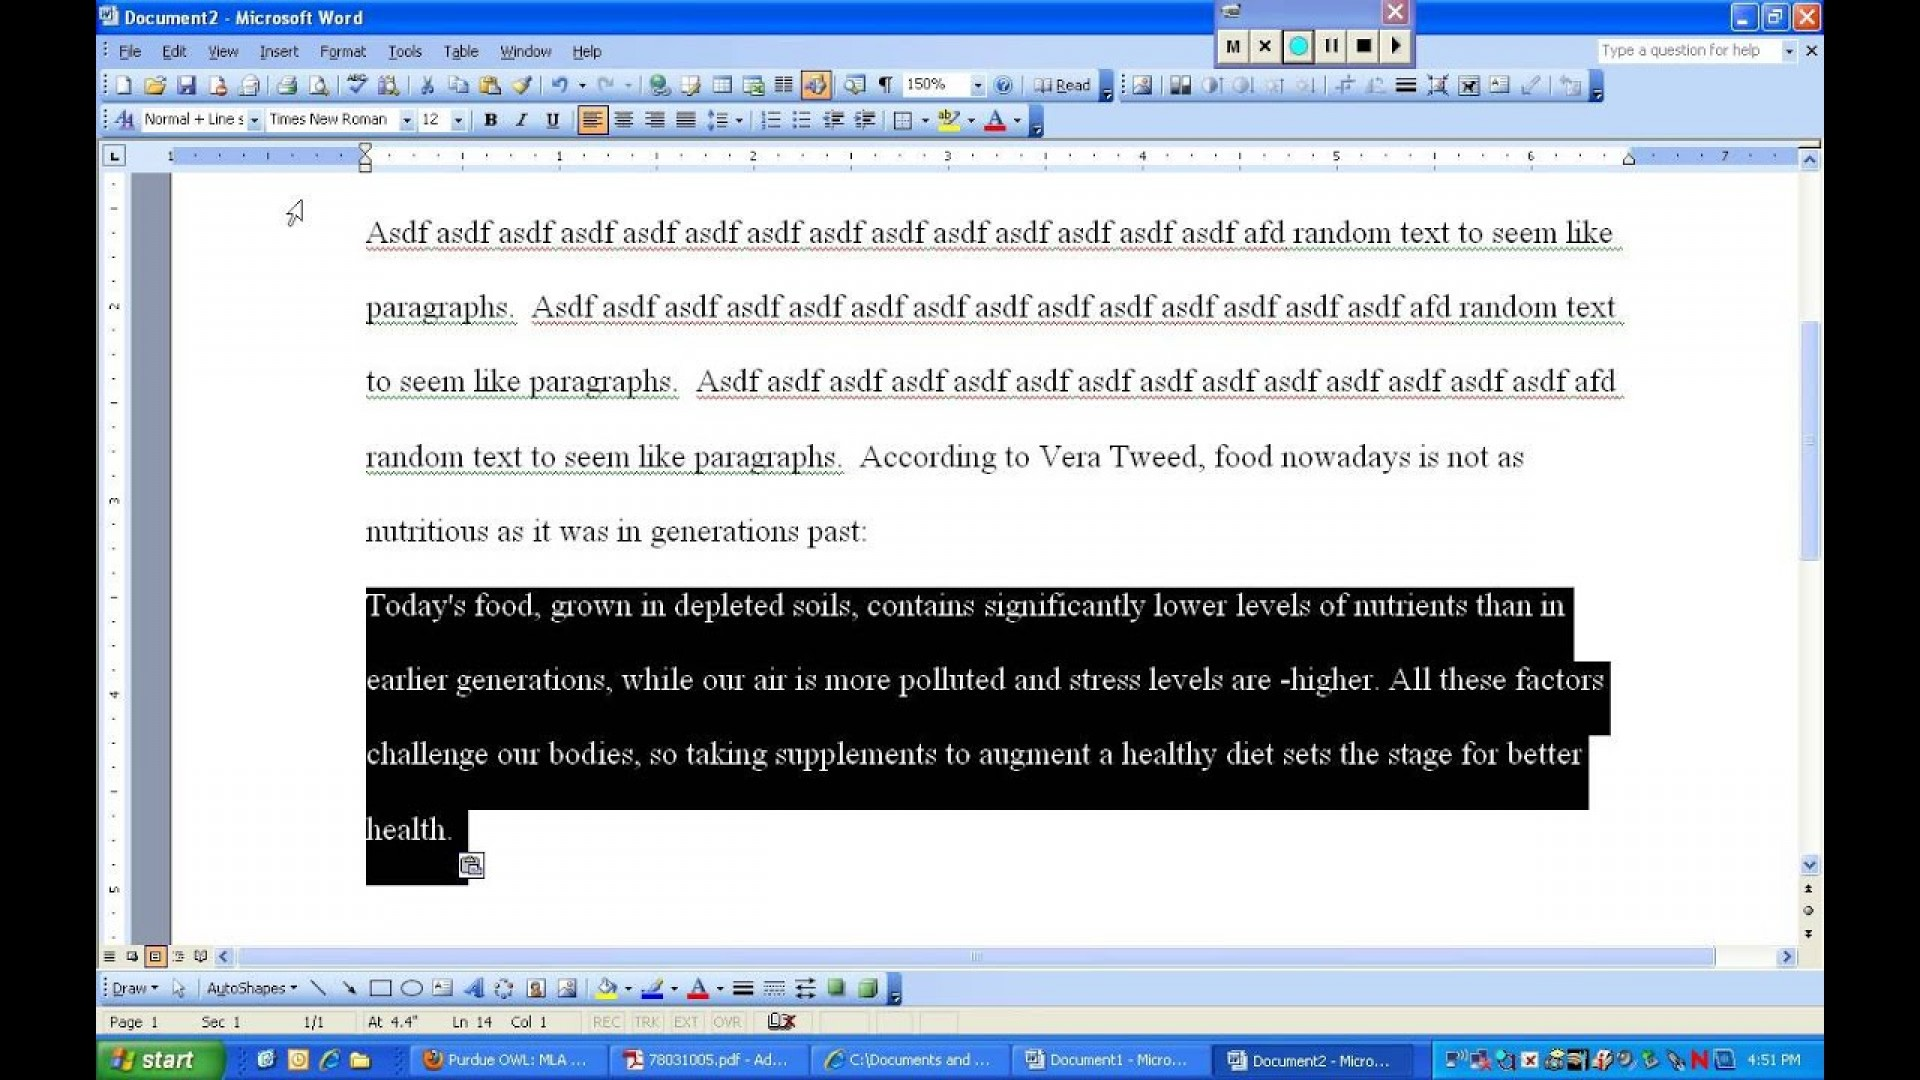 012 Maxresdefault How To Cite Poem In An Essay Outstanding A Put Block Quote Mla Properly Apa 1920